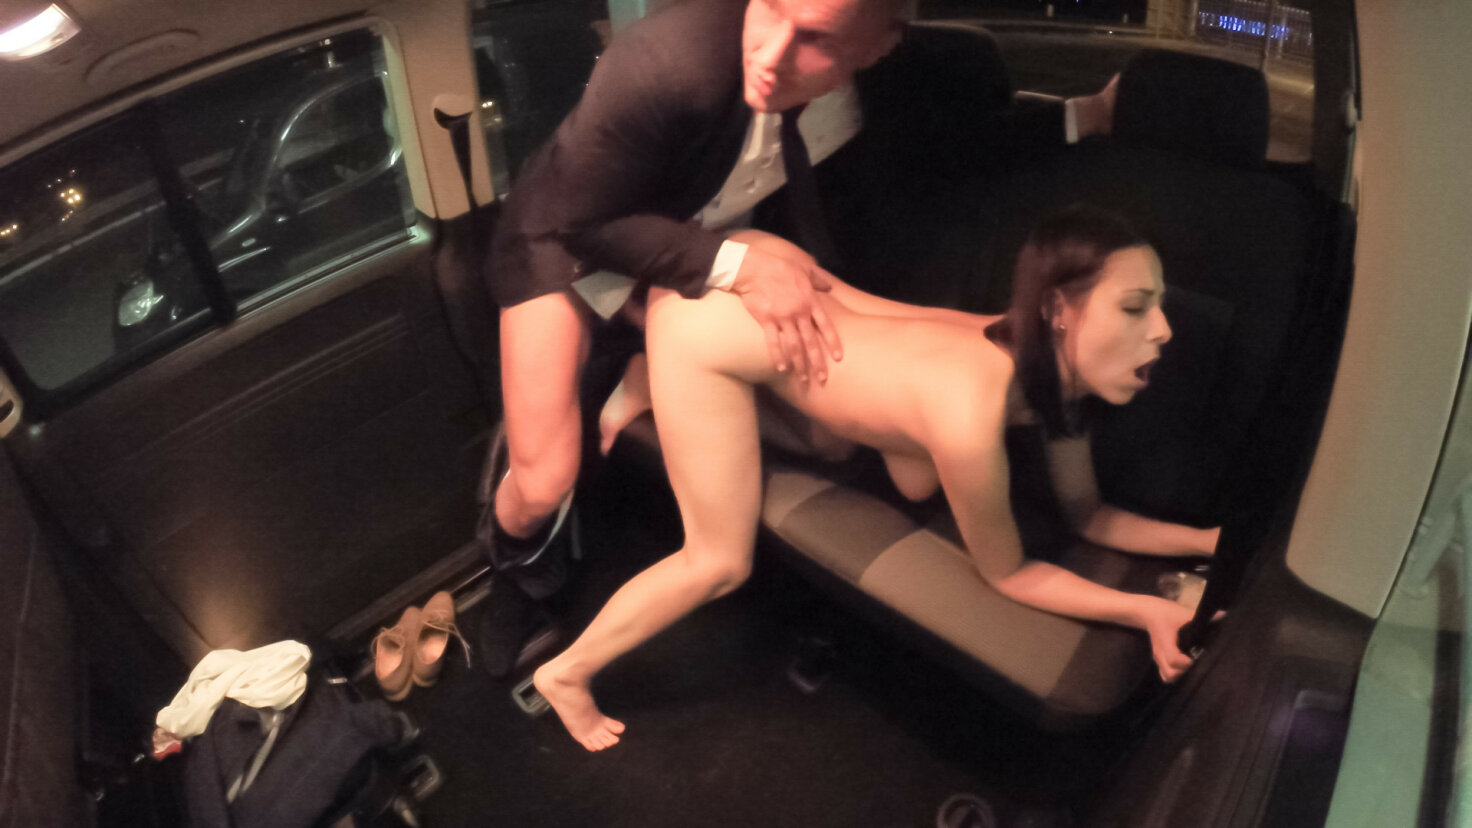 Public sex in the car with hot Czech babe leaves her cum covered and happy